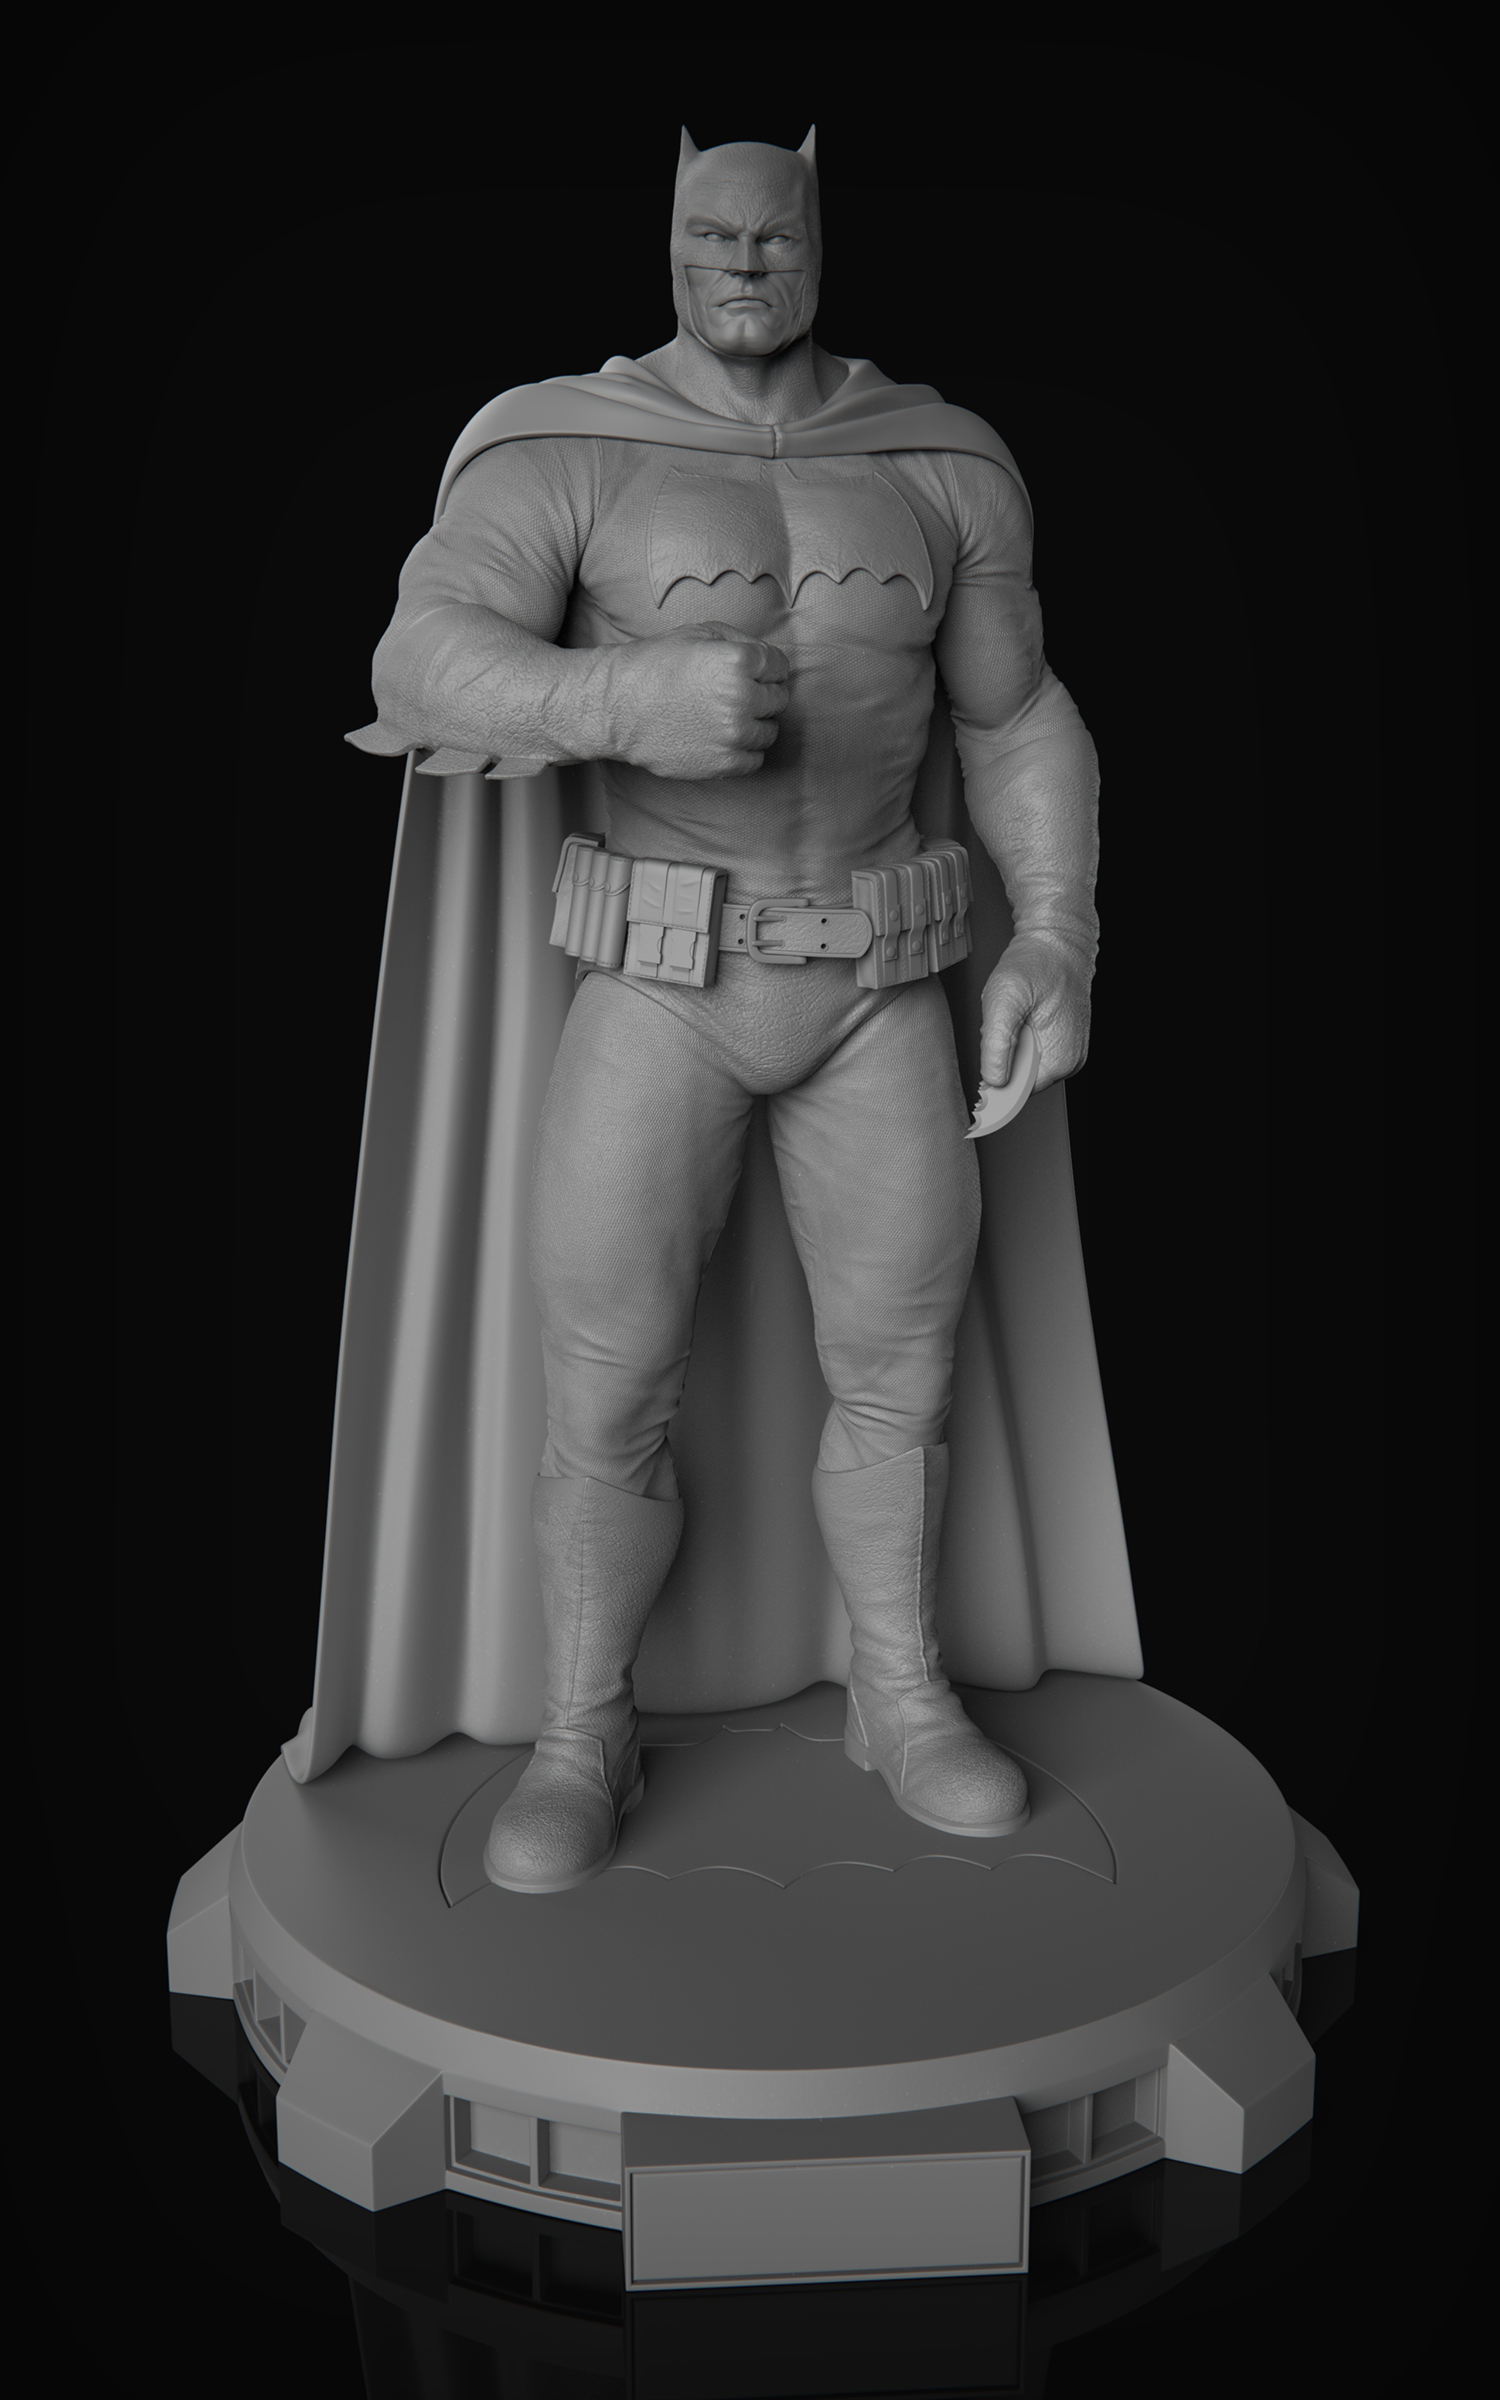 Frank Miller - Batman Render gray 2.jpg